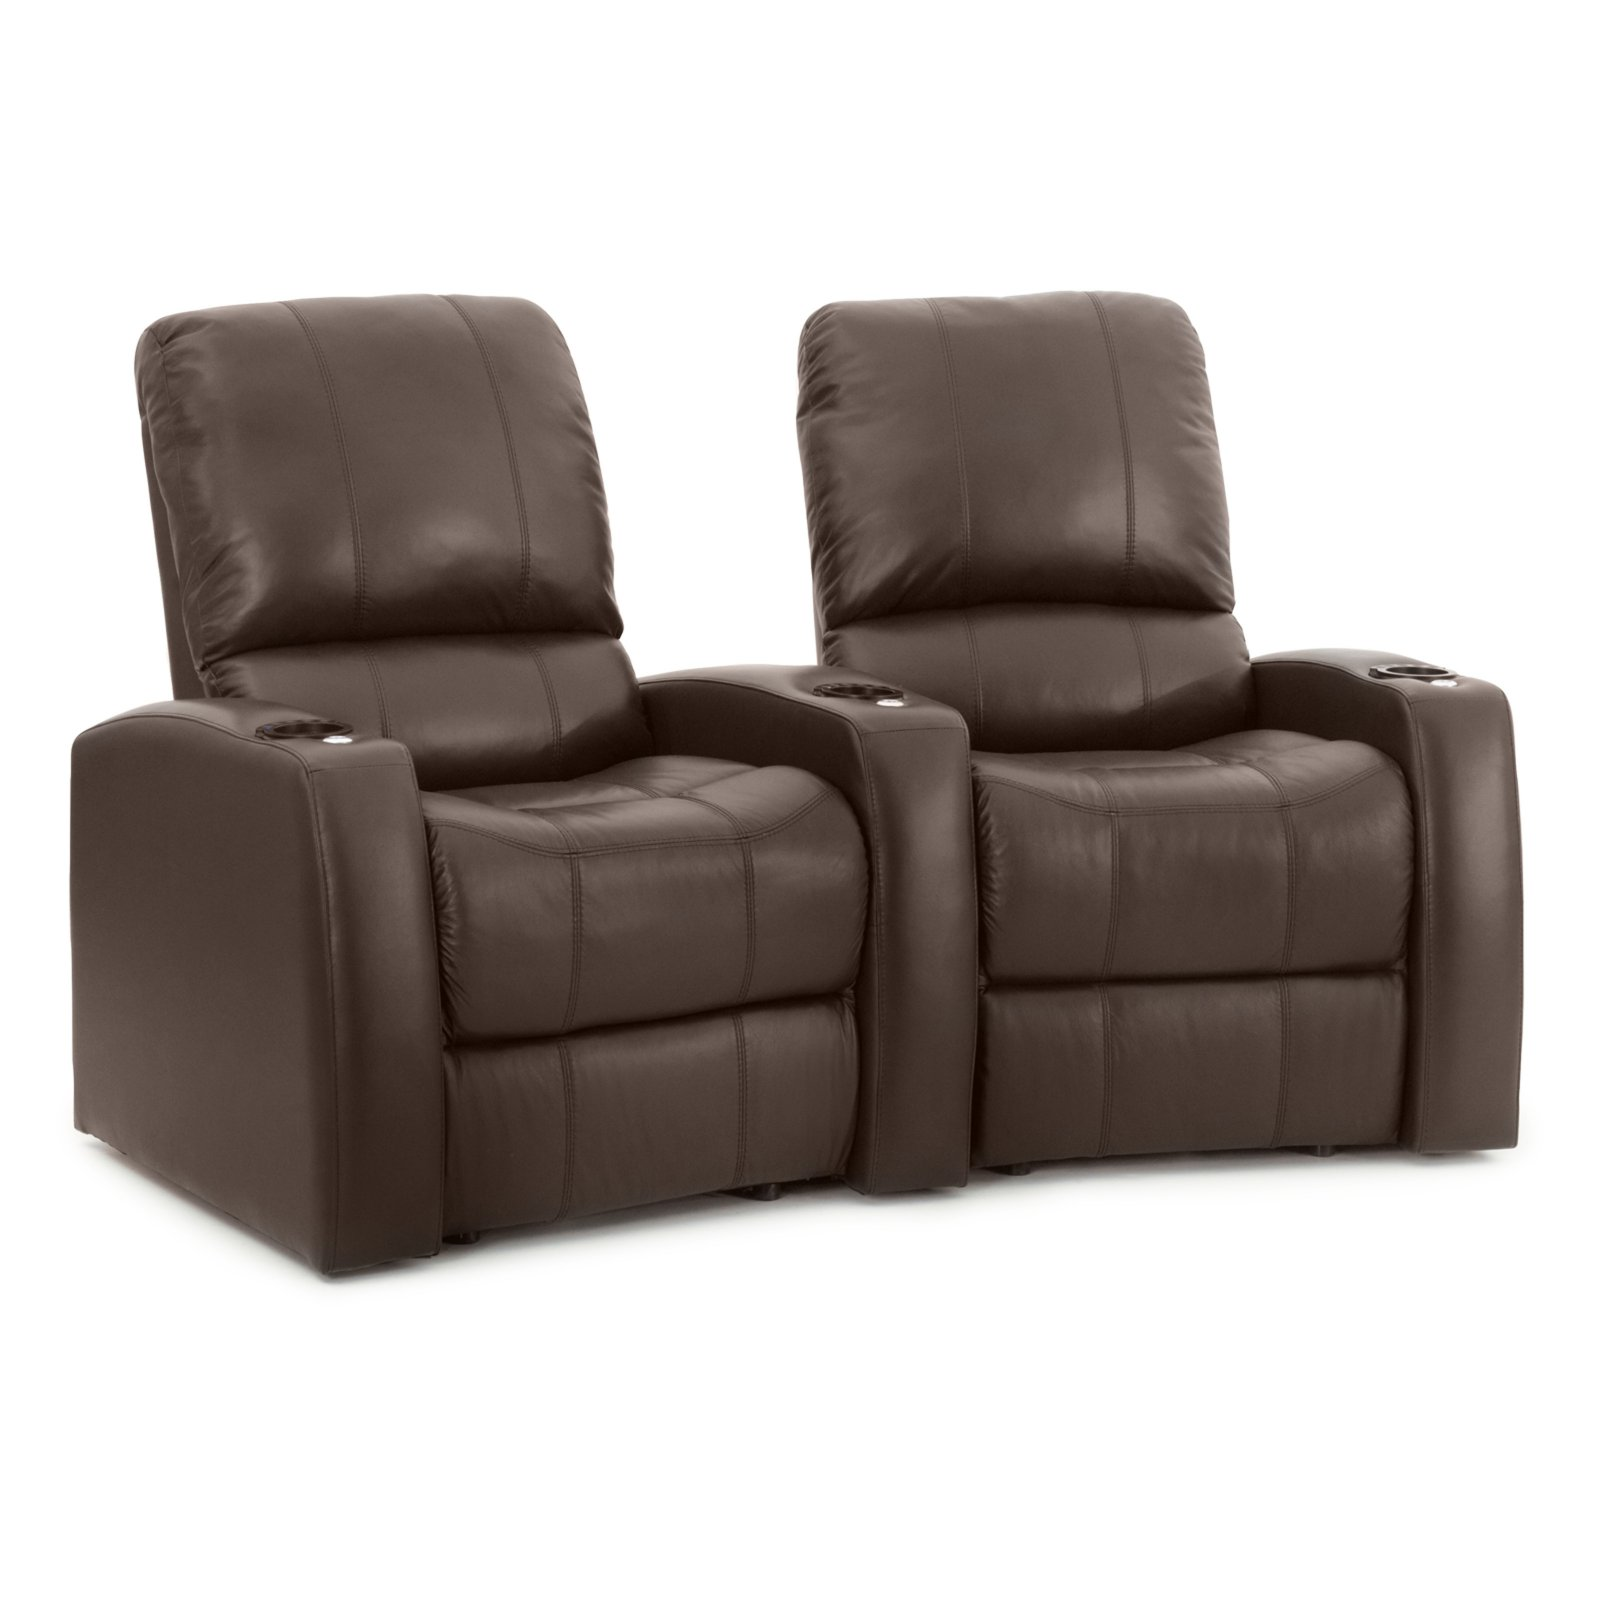 Octane Blaze XL900 2 Seater Curved Home Theater Seating